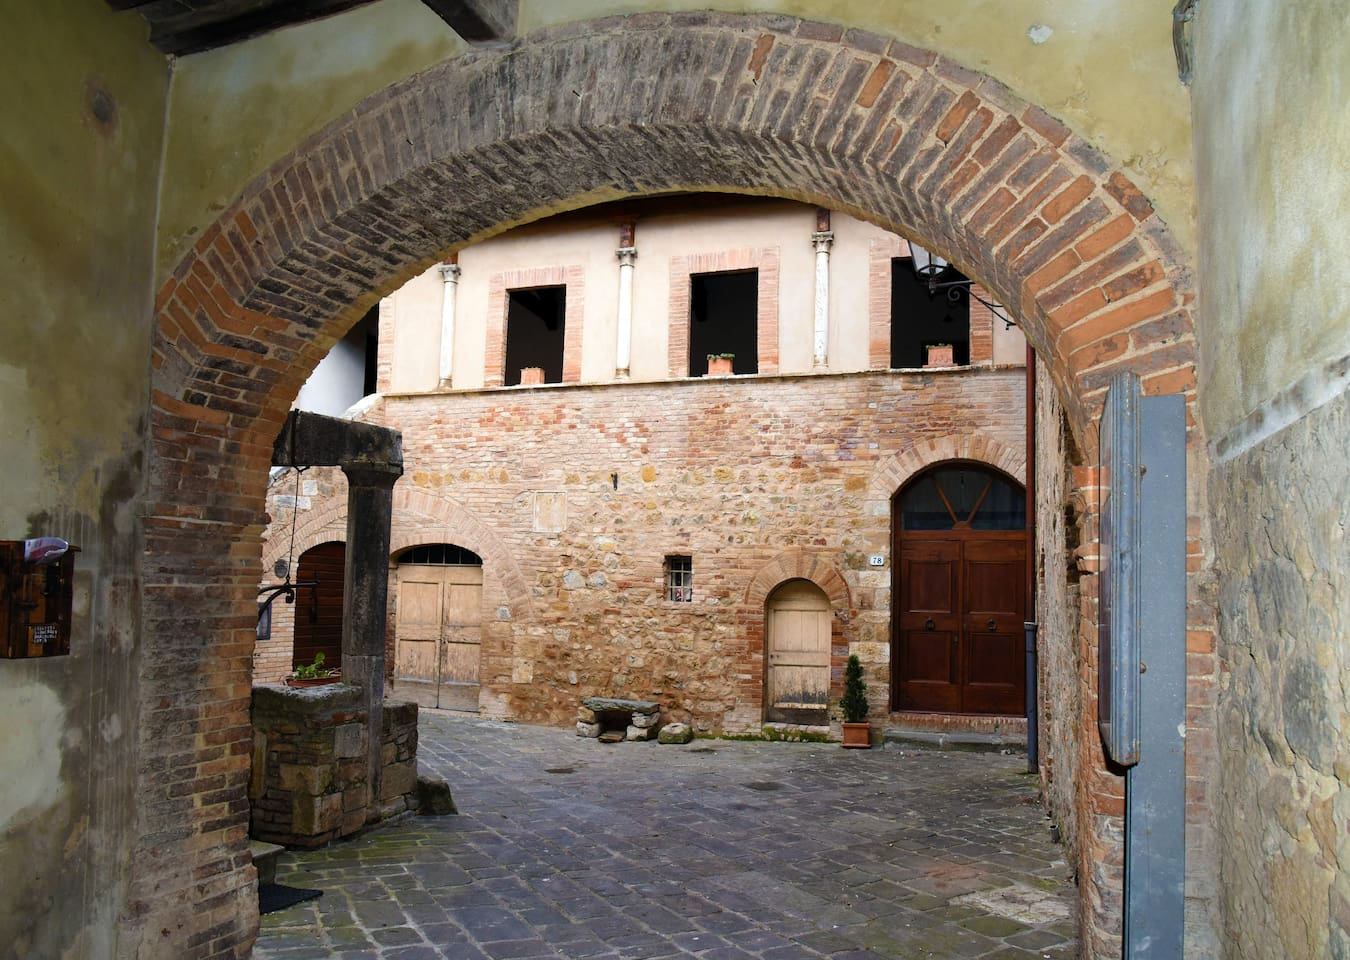 Entrance from courtyard of the well